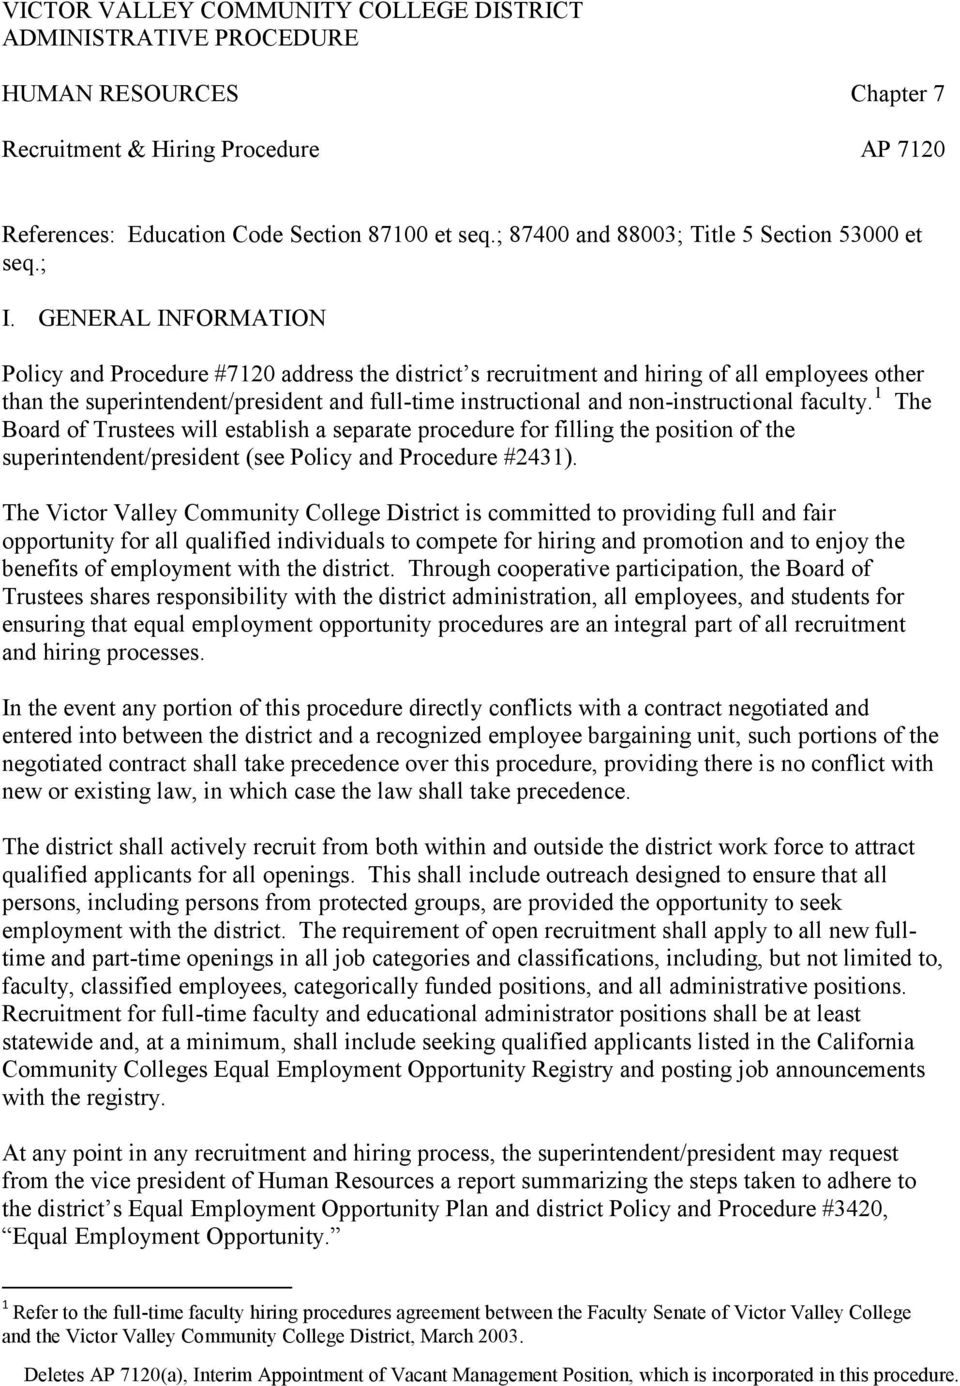 faculty. 1 The Board of Trustees will establish a separate procedure for filling the position of the superintendent/president (see Policy and Procedure #2431).